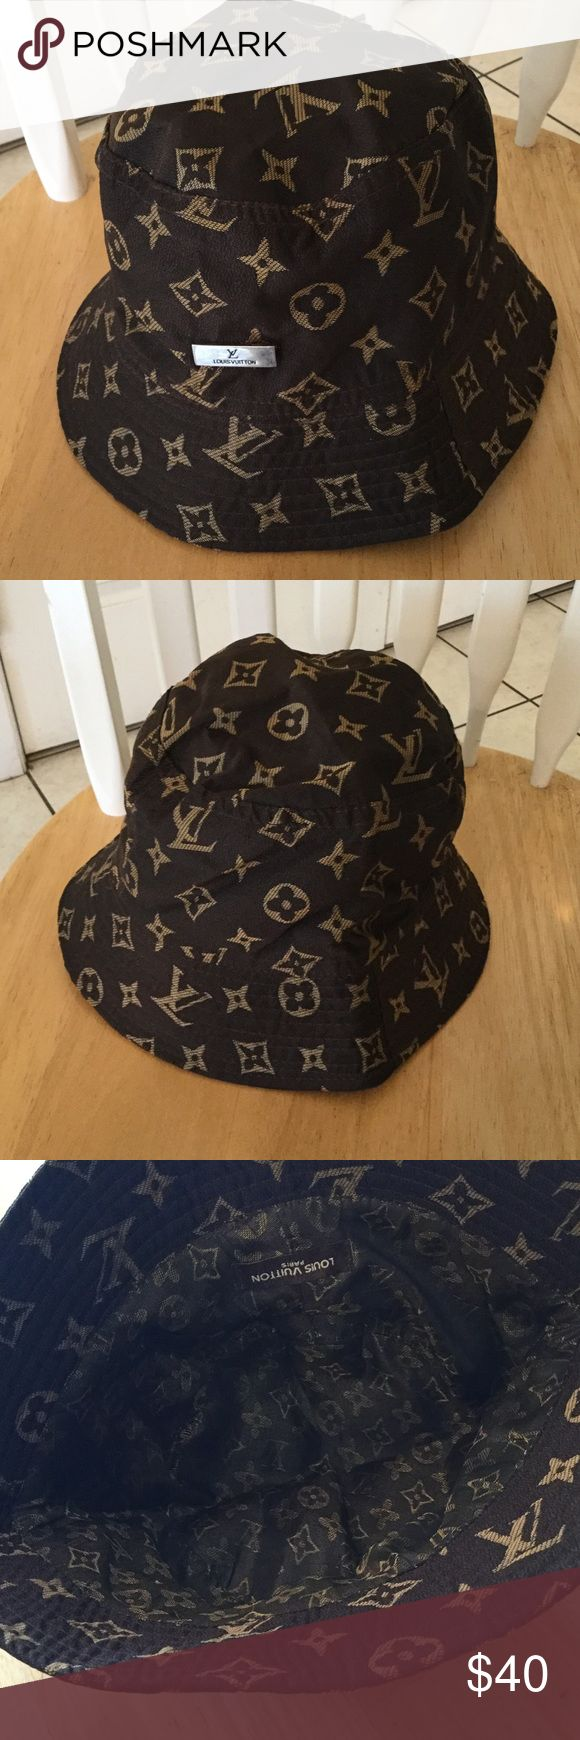 Louis Vuitton hat Nice hat good condition not sure if authentic or not low price. Accessories Hats